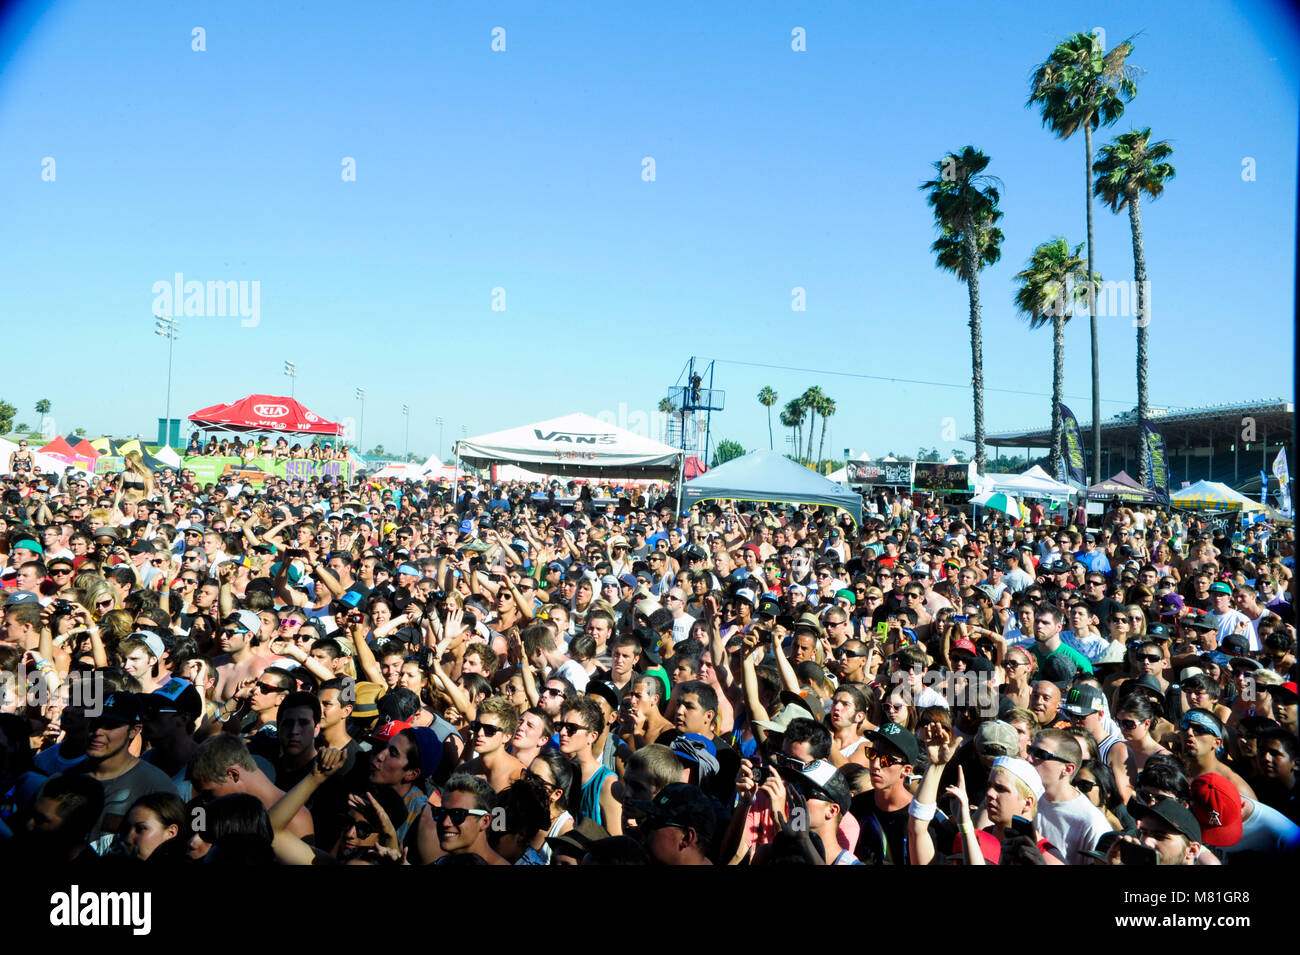 Crowd atmosphere at the Vans Warped Tour at Pomona Fairgrounds on July 1, 2011 in Pomona, California. - Stock Image